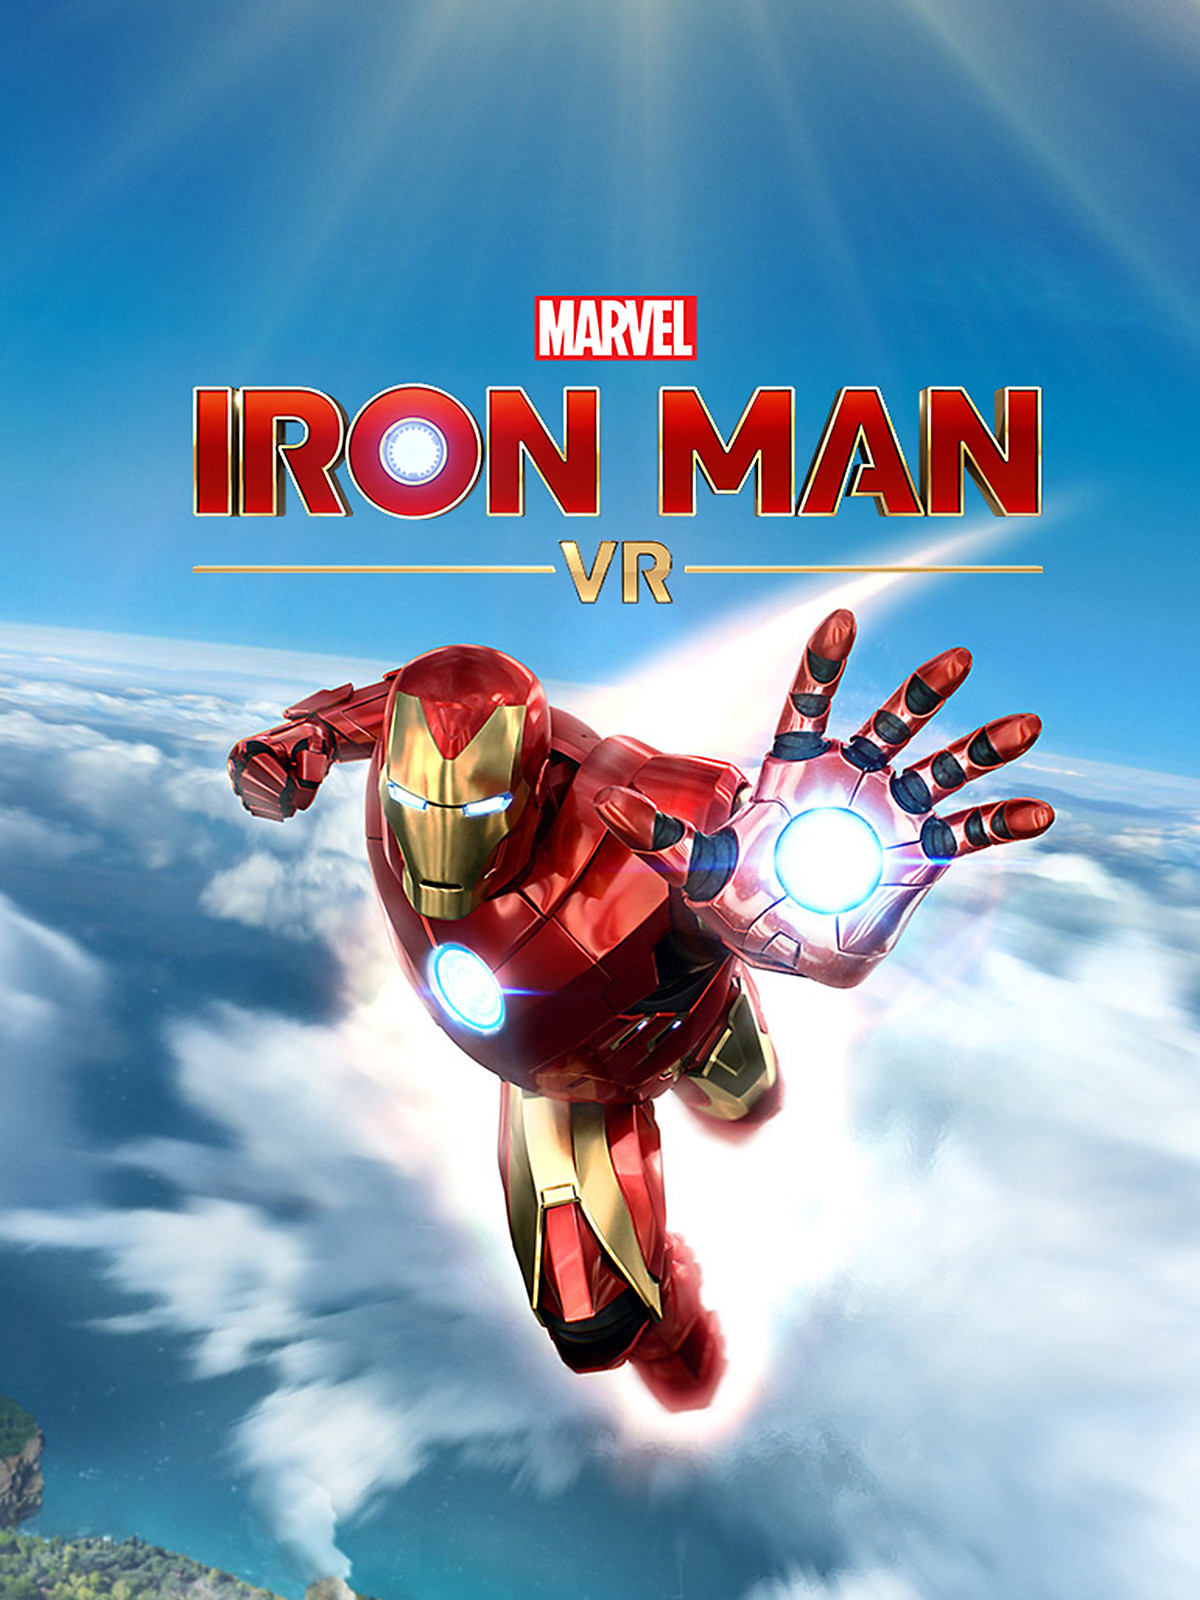 Marvel's Iron Man Box Art